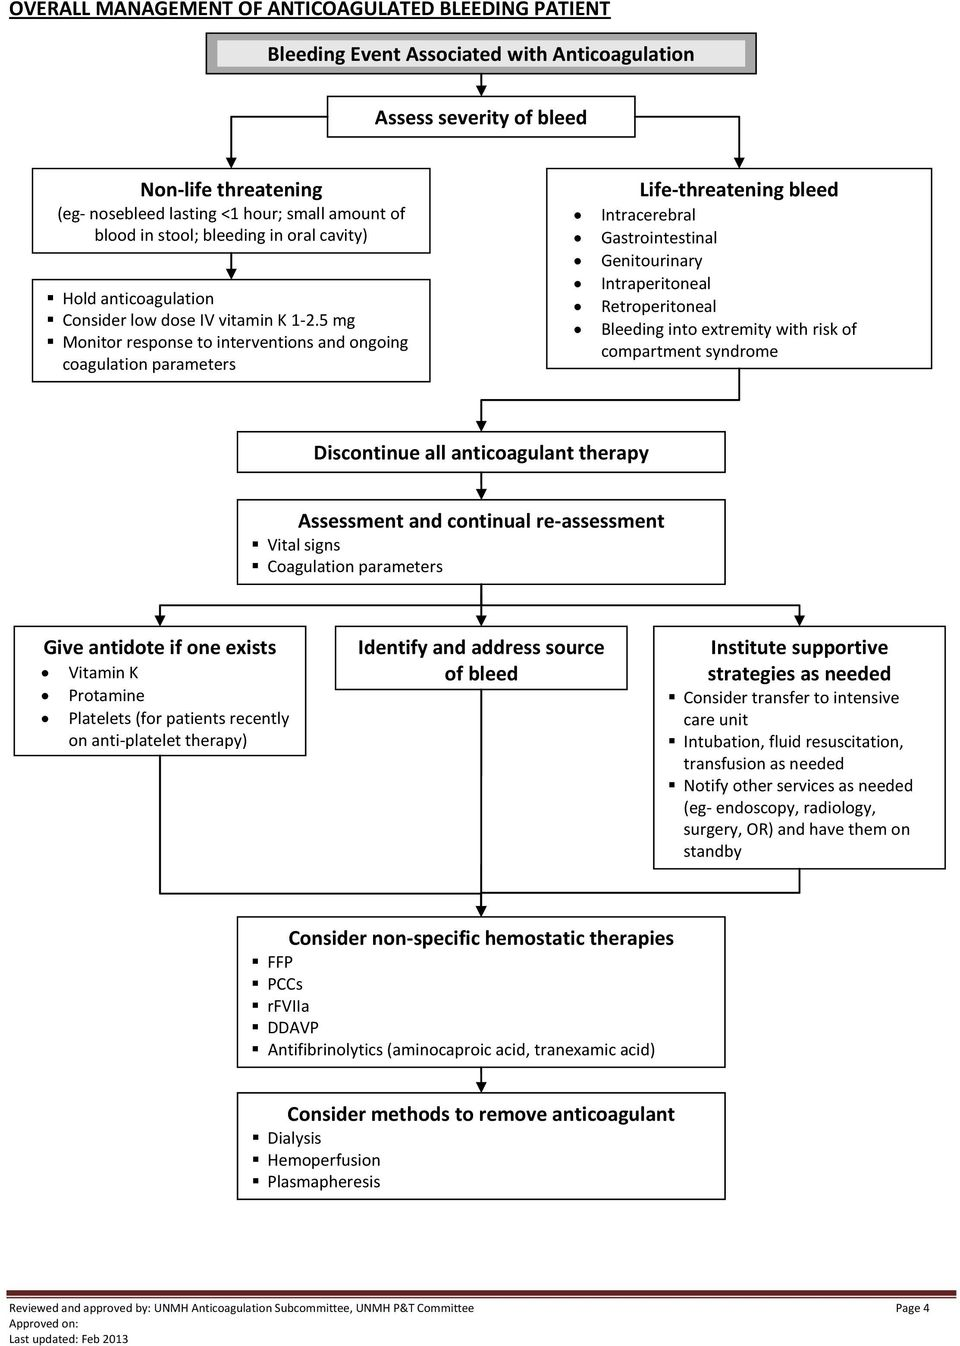 5 mg Monitor response to interventions and ongoing coagulation parameters Life- threatening bleed Intracerebral Gastrointestinal Genitourinary Intraperitoneal Retroperitoneal Bleeding into extremity